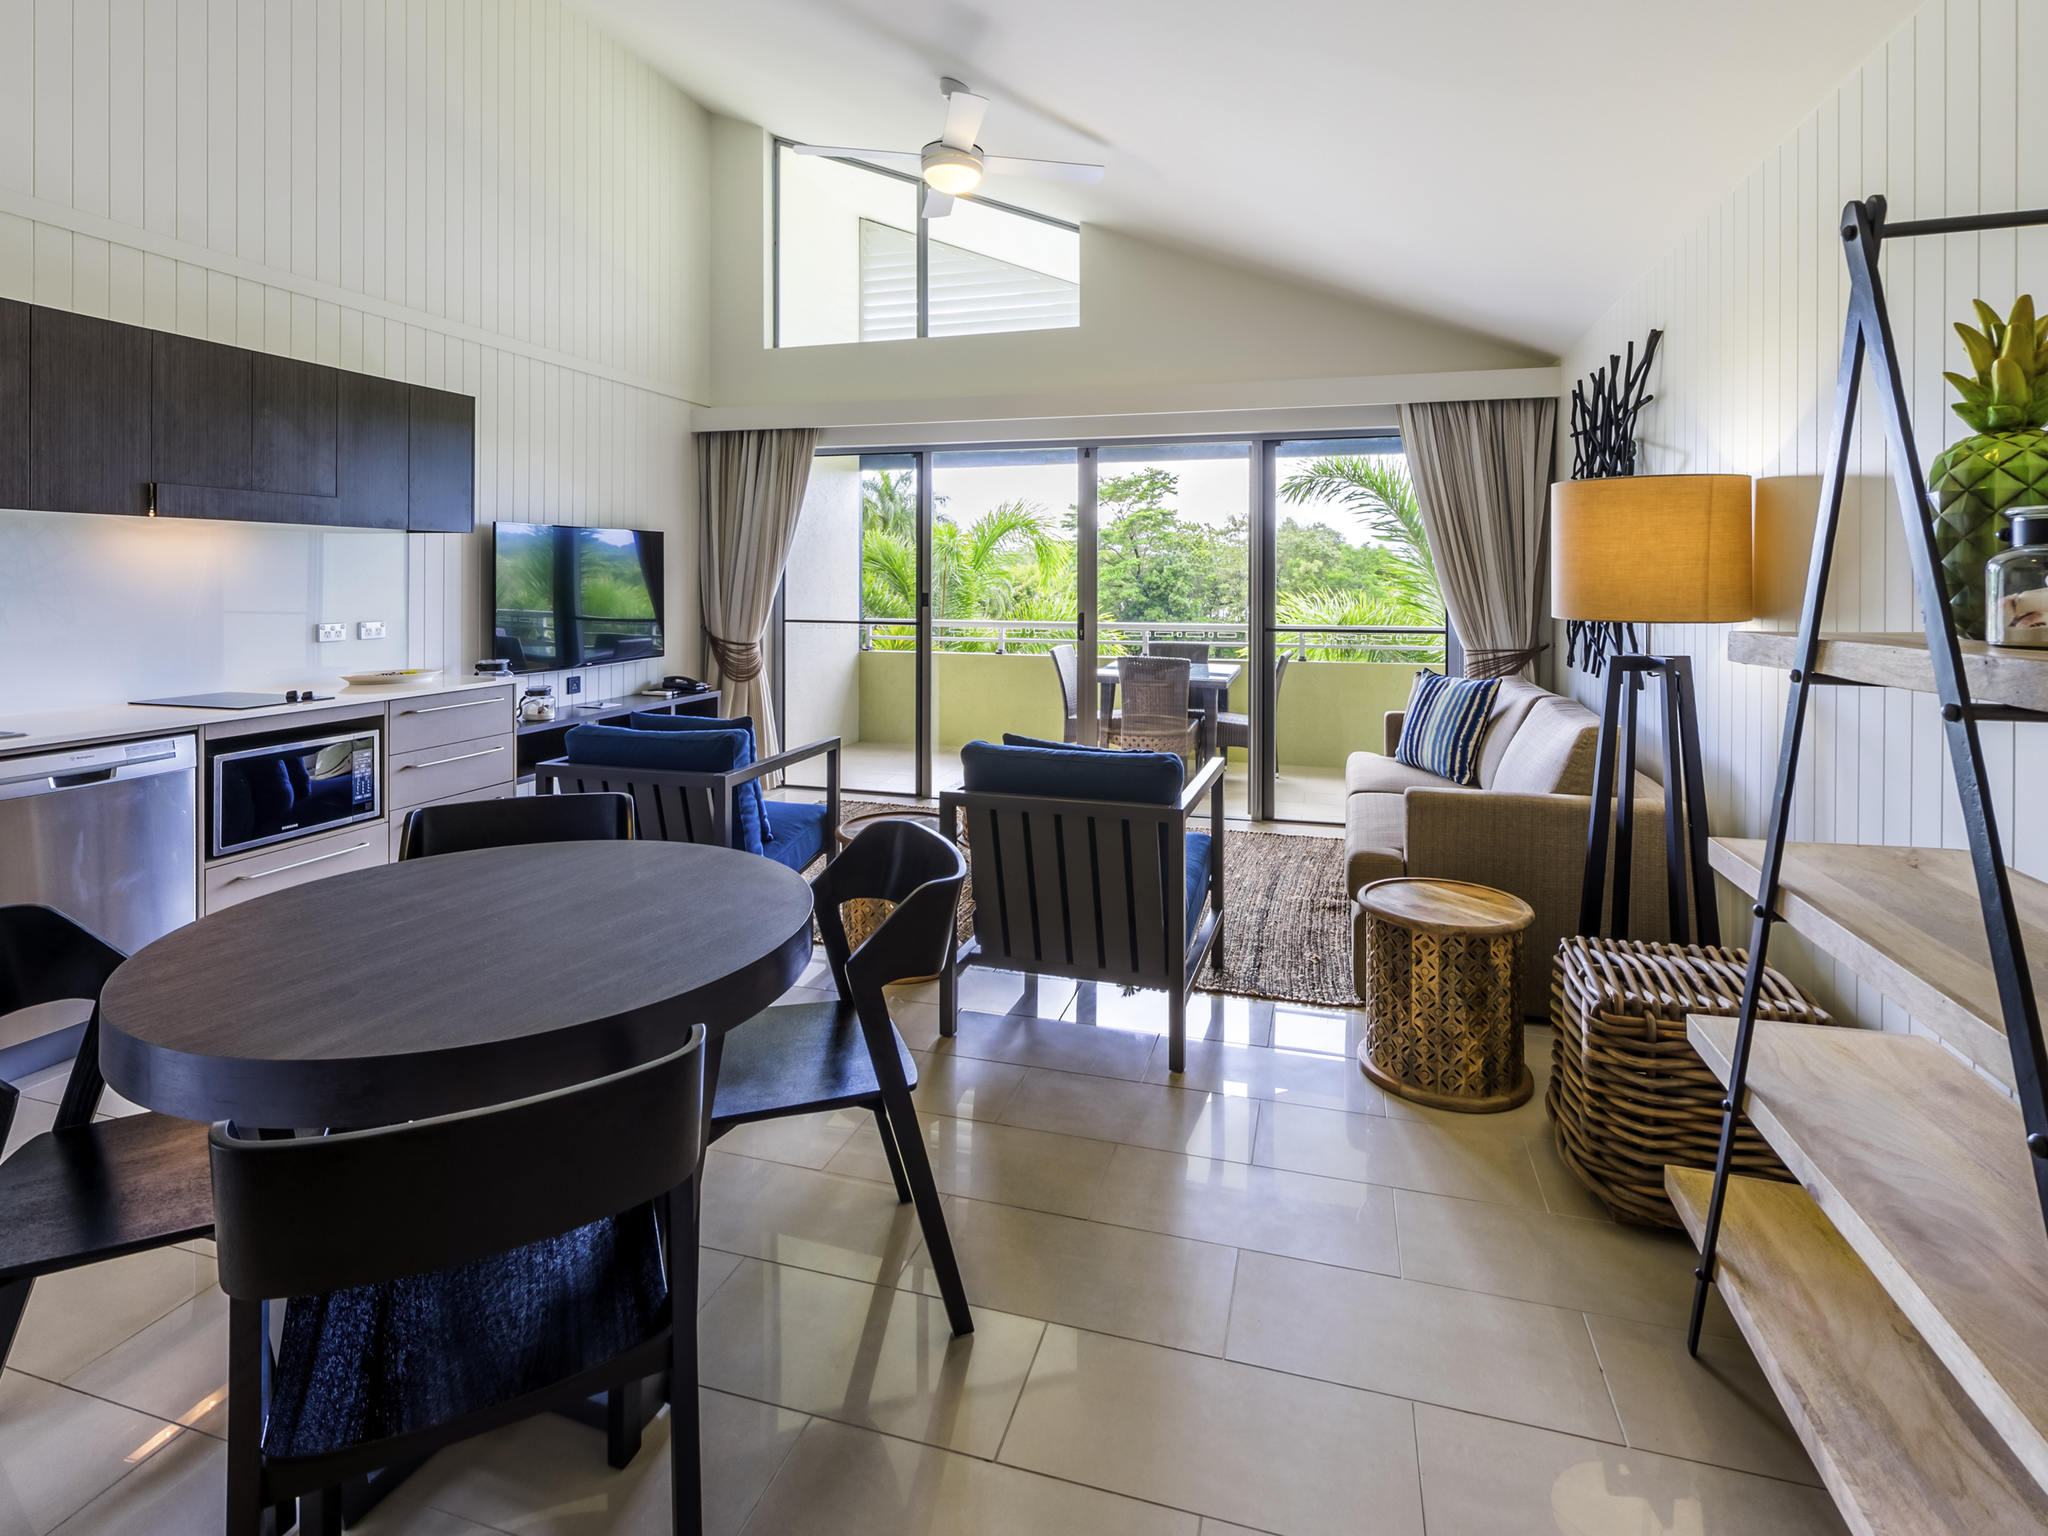 Country Kitchen Coral Springs The Sebel Palm Cove Coral Coast Accorhotels